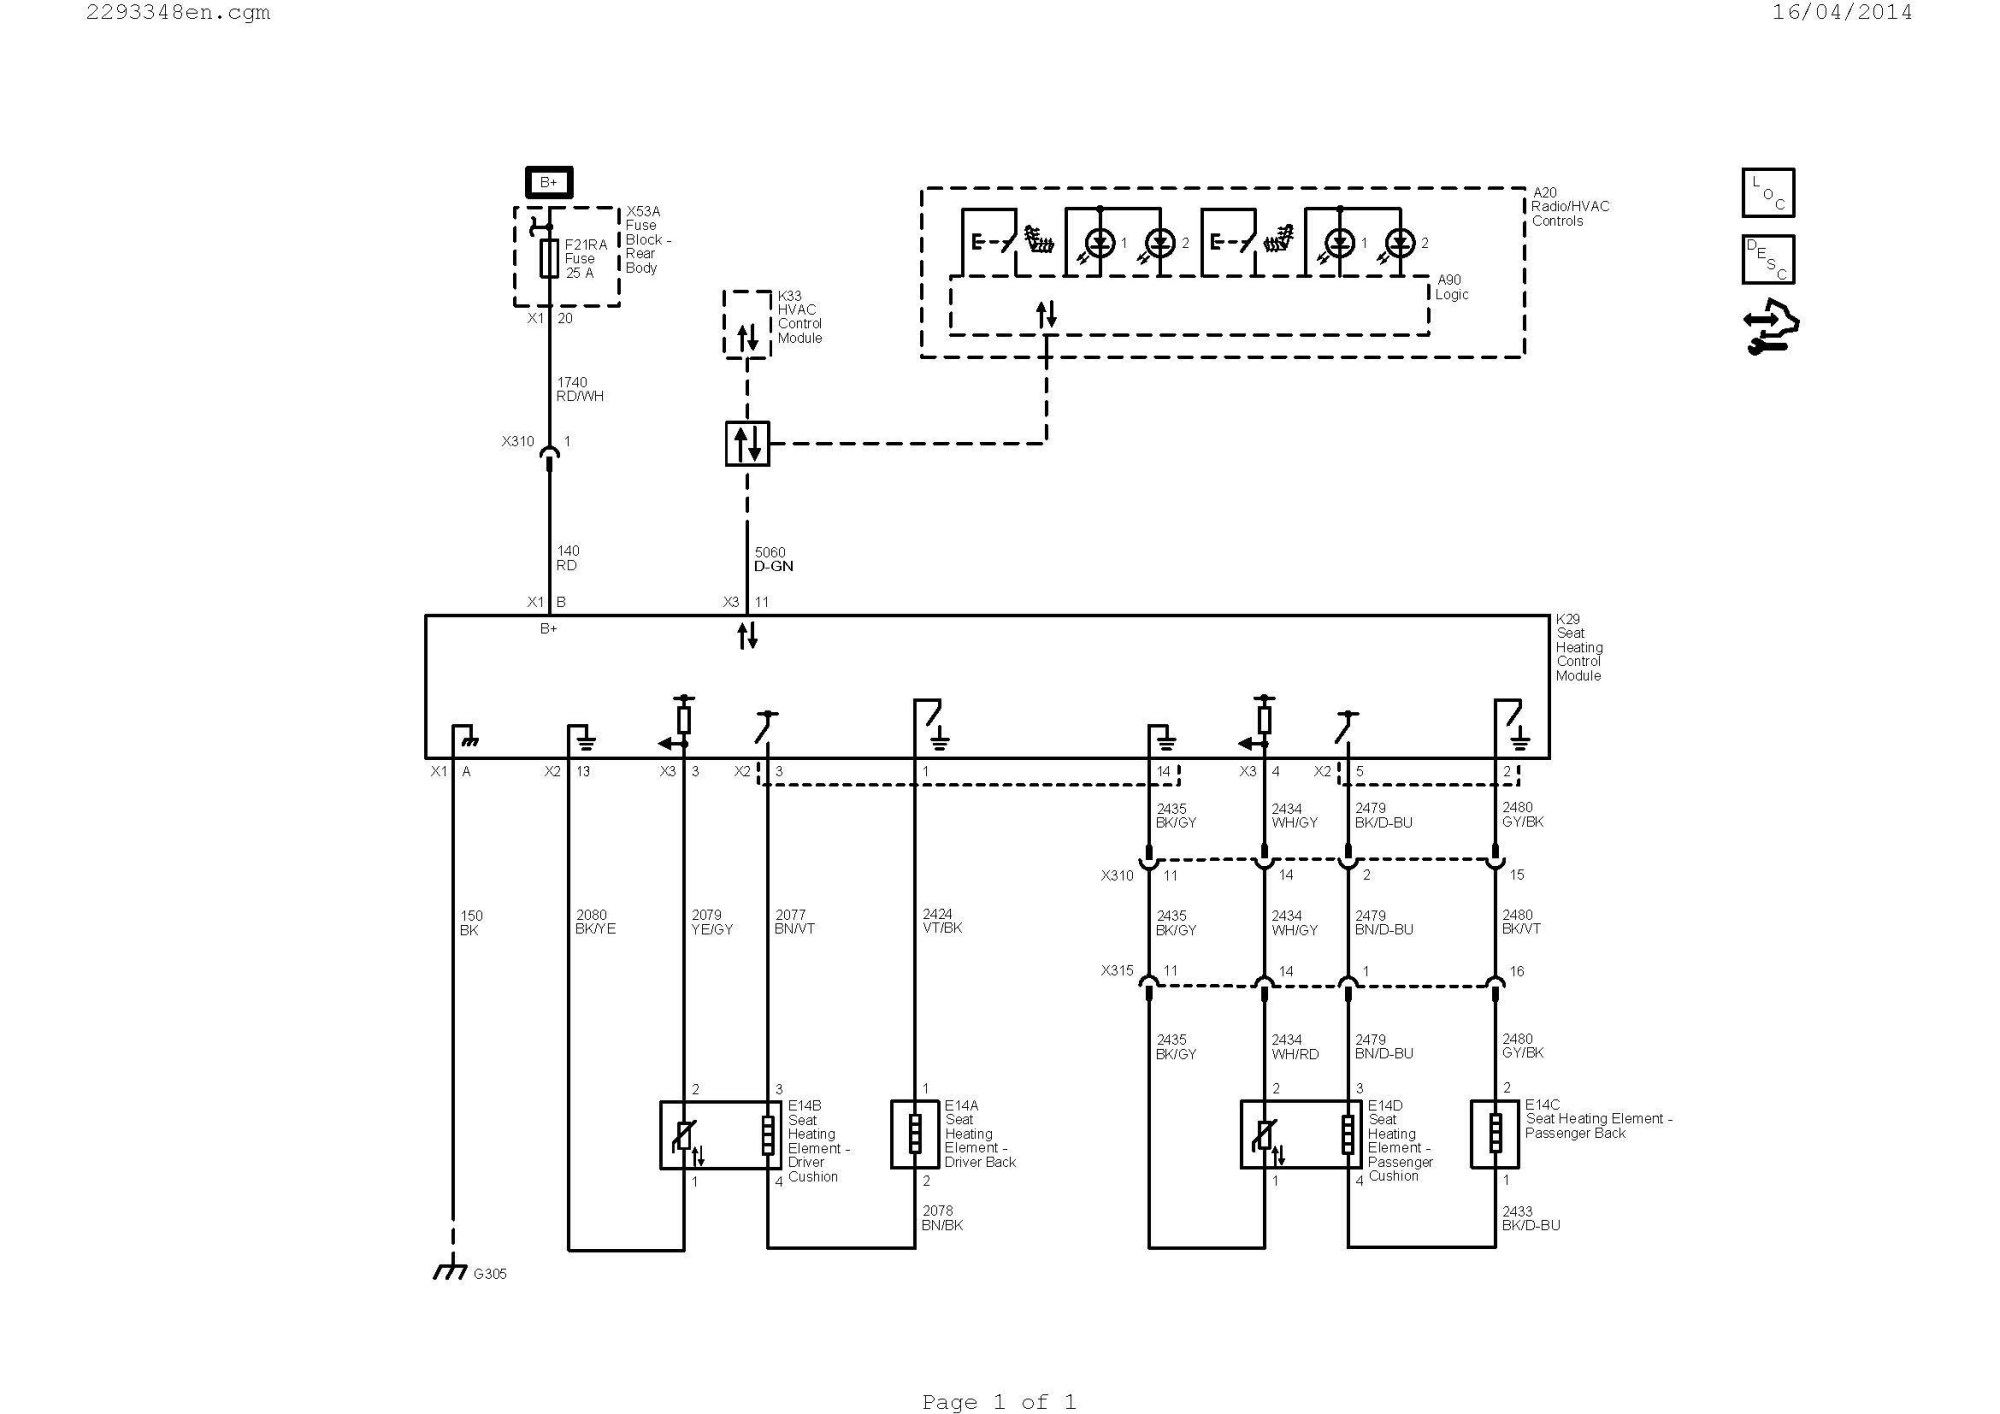 hight resolution of 4 wire thermostat wiring diagram sample wiring diagram overhead light fixture wiring diagram overhead light fixture